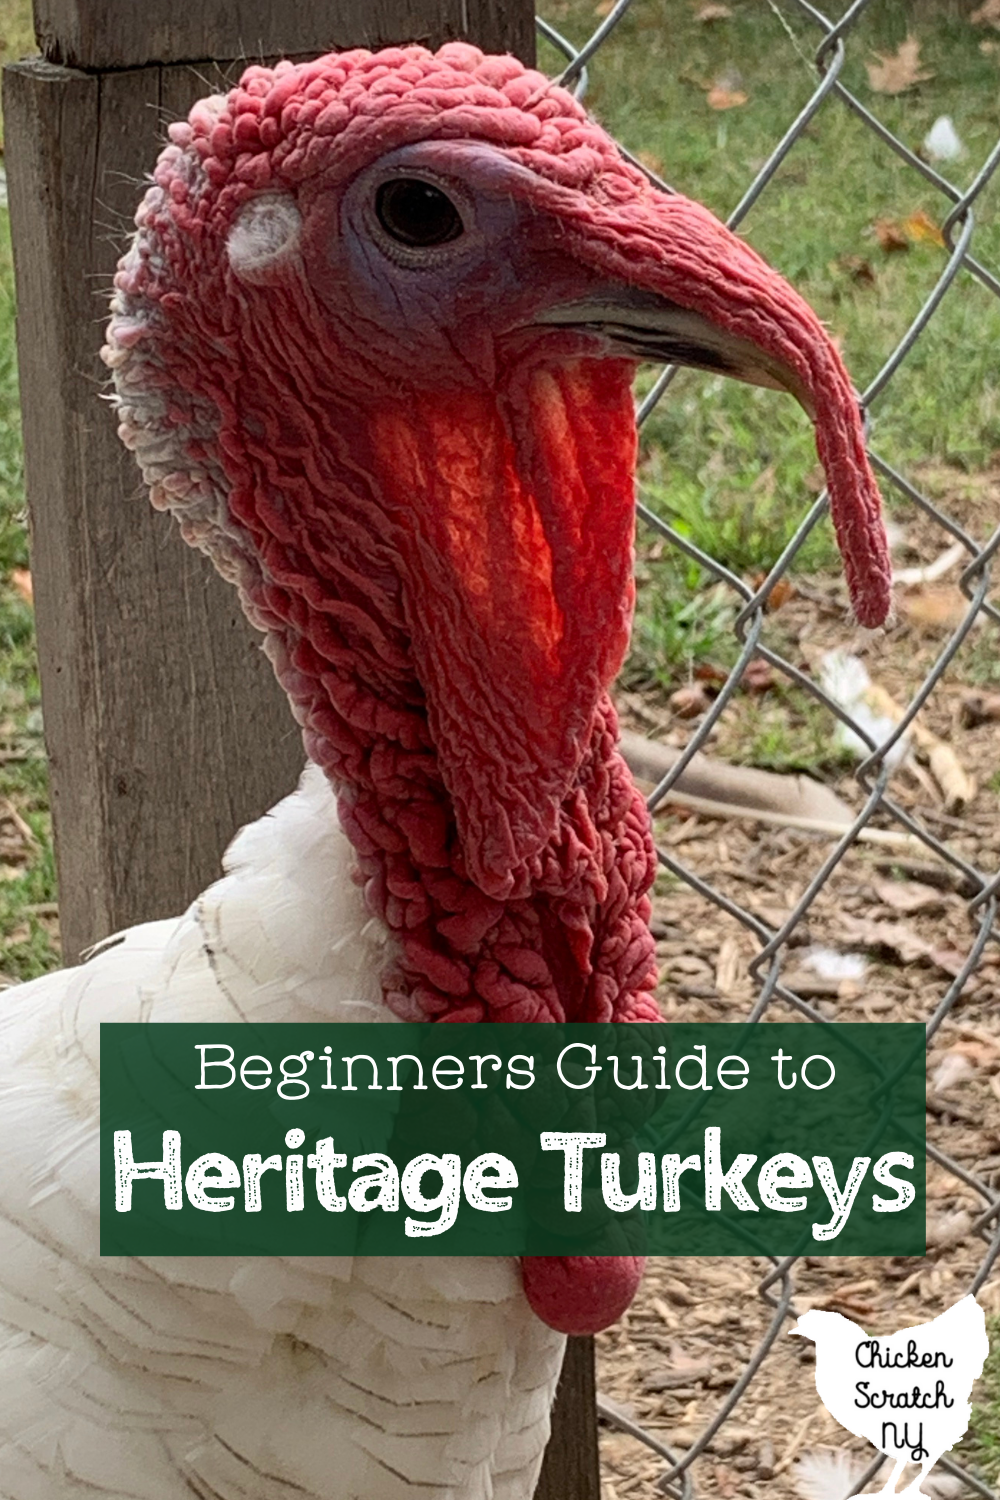 close up of royal palm turkey face with text overlay Beginners Guide to Heritage Turkeys